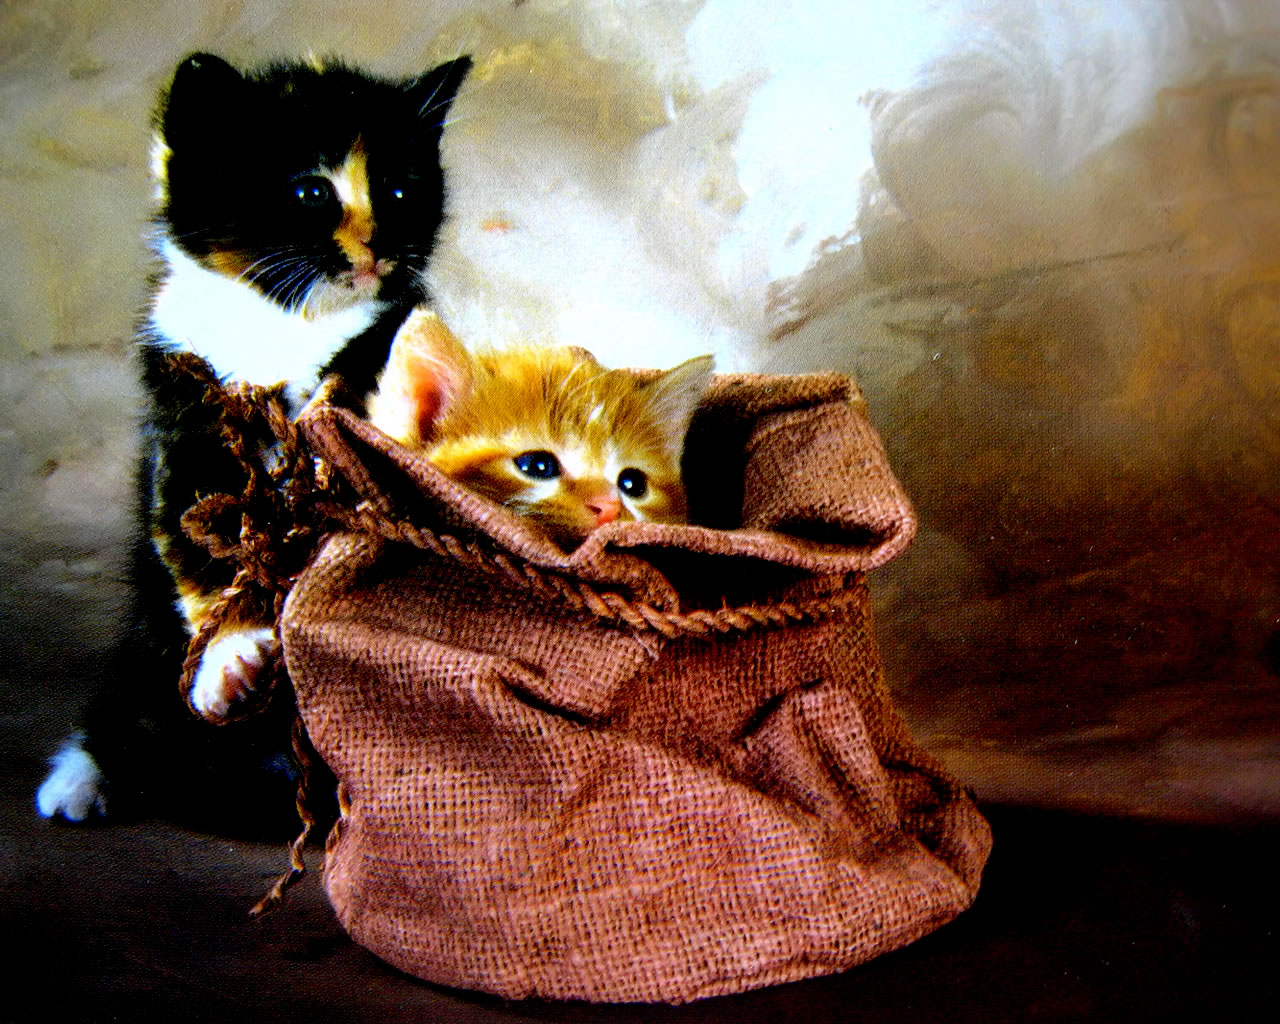 download wallpaper: twee kittens wallpaper